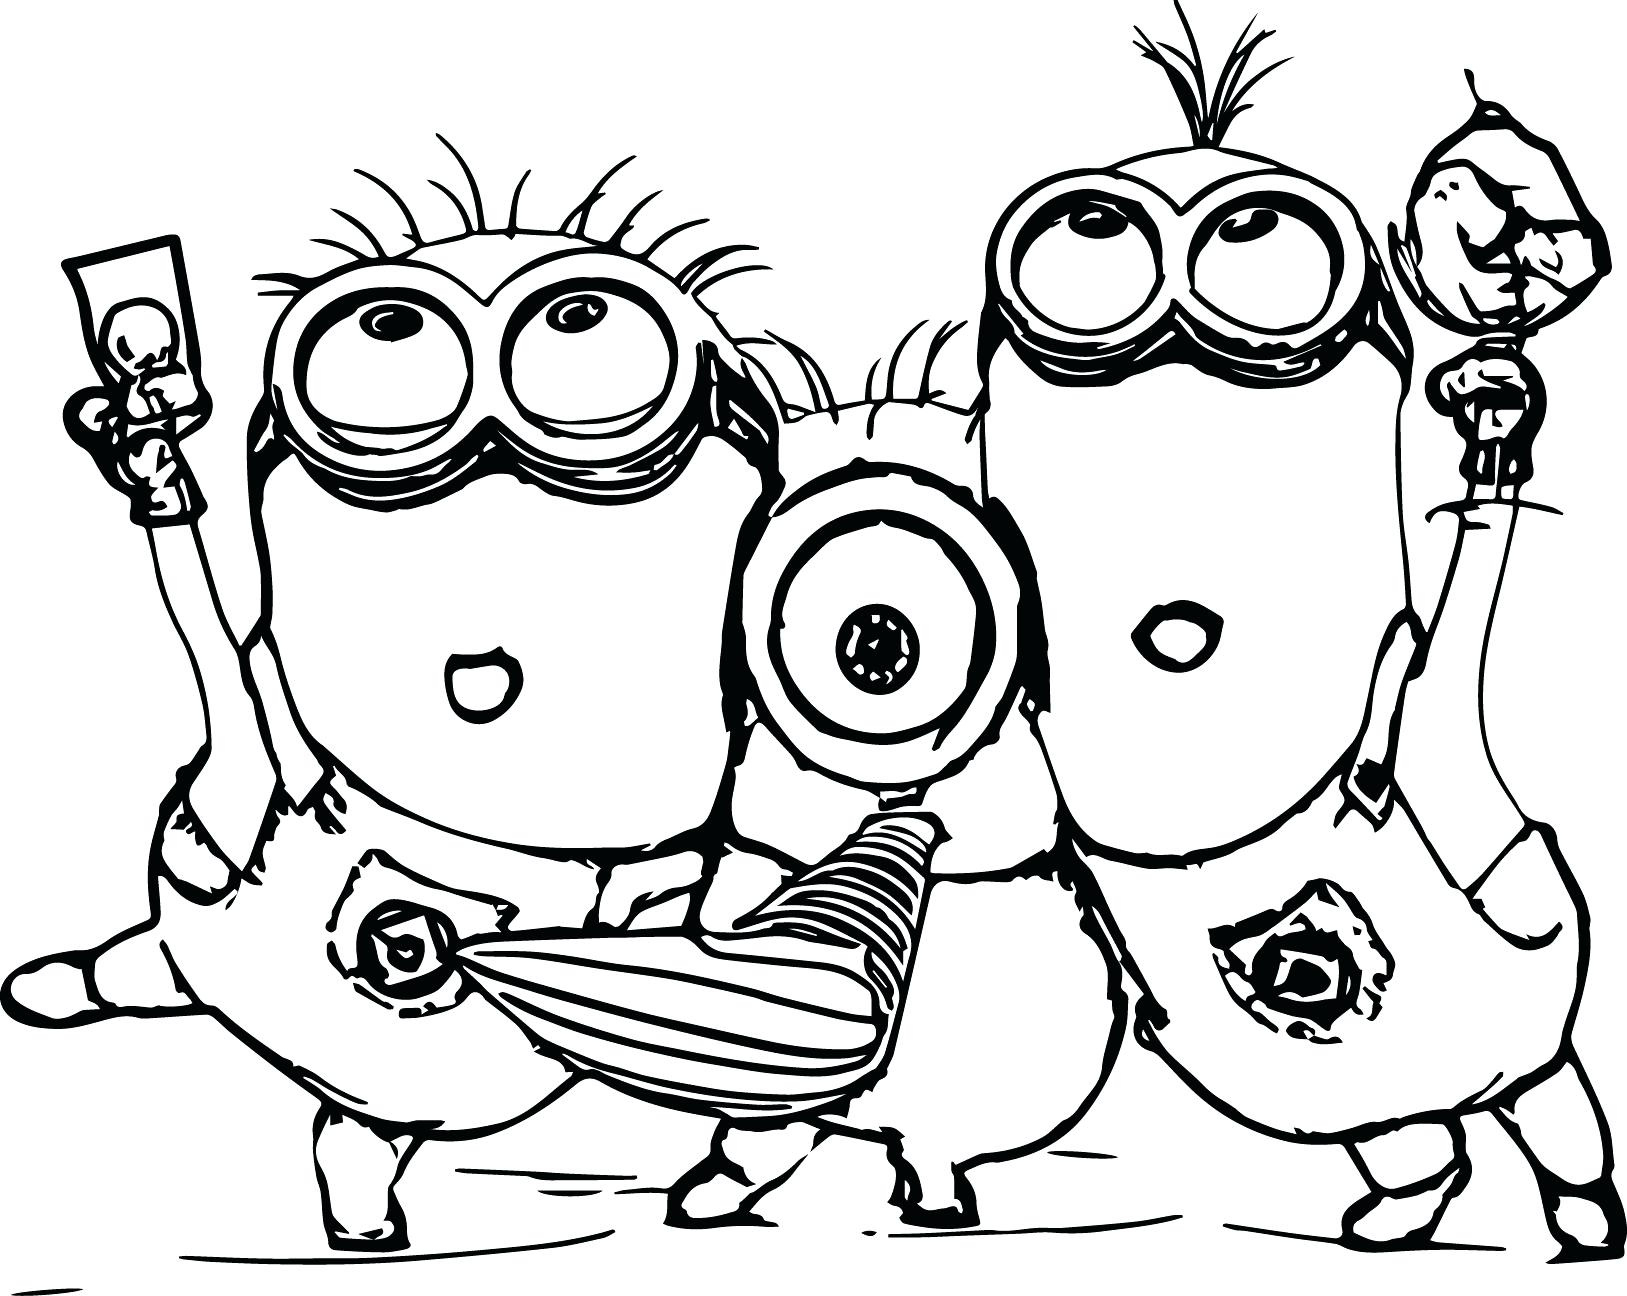 1627x1296 Free Printable Minion Coloring Pages Minions Drawing